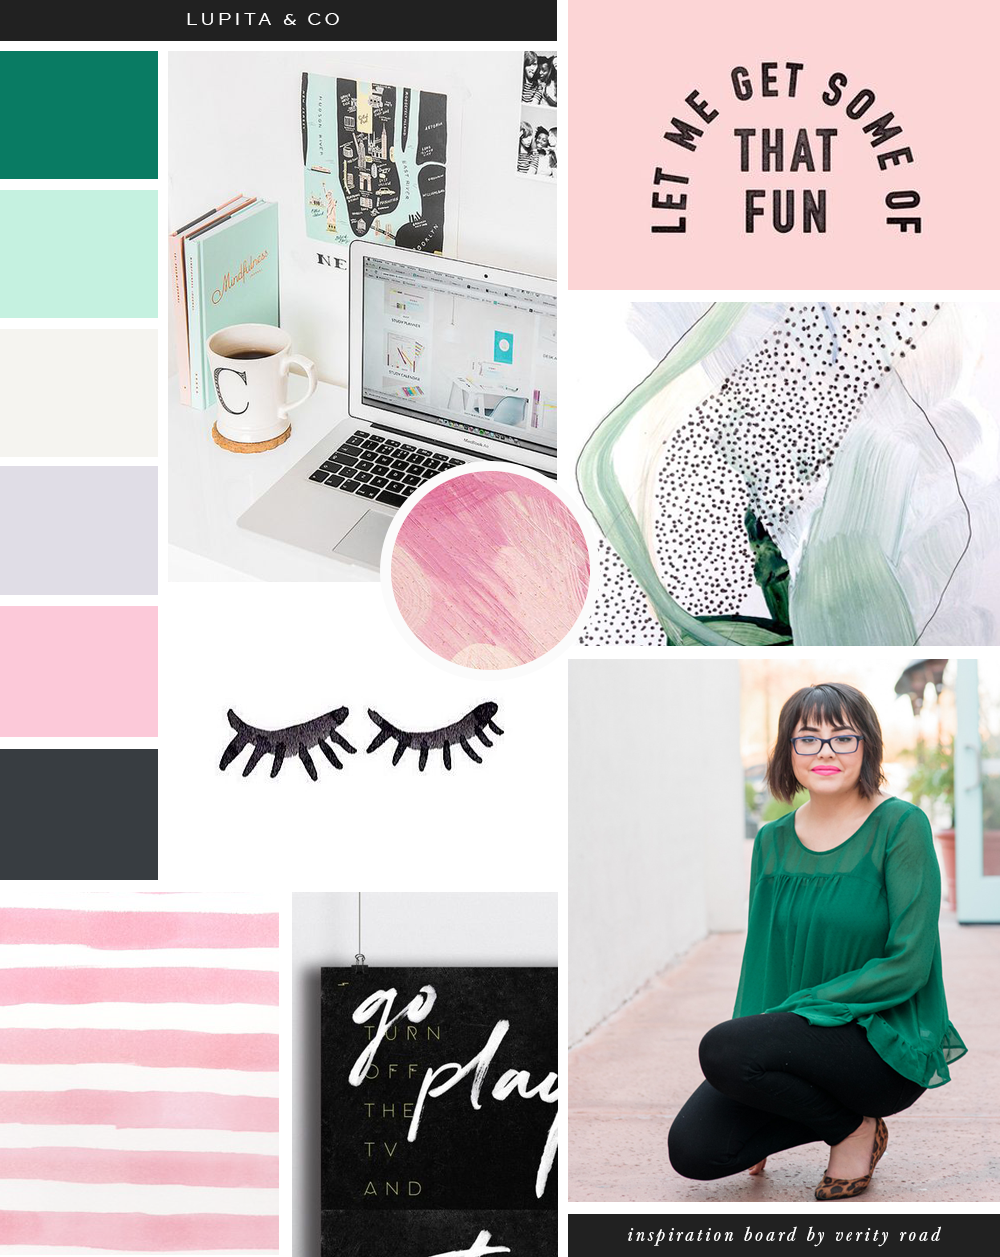 Mood board for lupita & co, online business management and strategy, virtual assistants, luxury feminine branding and web design for female entrepreneurs, feminine business, feminine branding. Inspiration board of typography, brush script font, sans serif, bright pastel color palette, mint, pink, lilac, paint strokes, pattern, business owner, blogger.. See more for brand board, social media branding & printed materials.